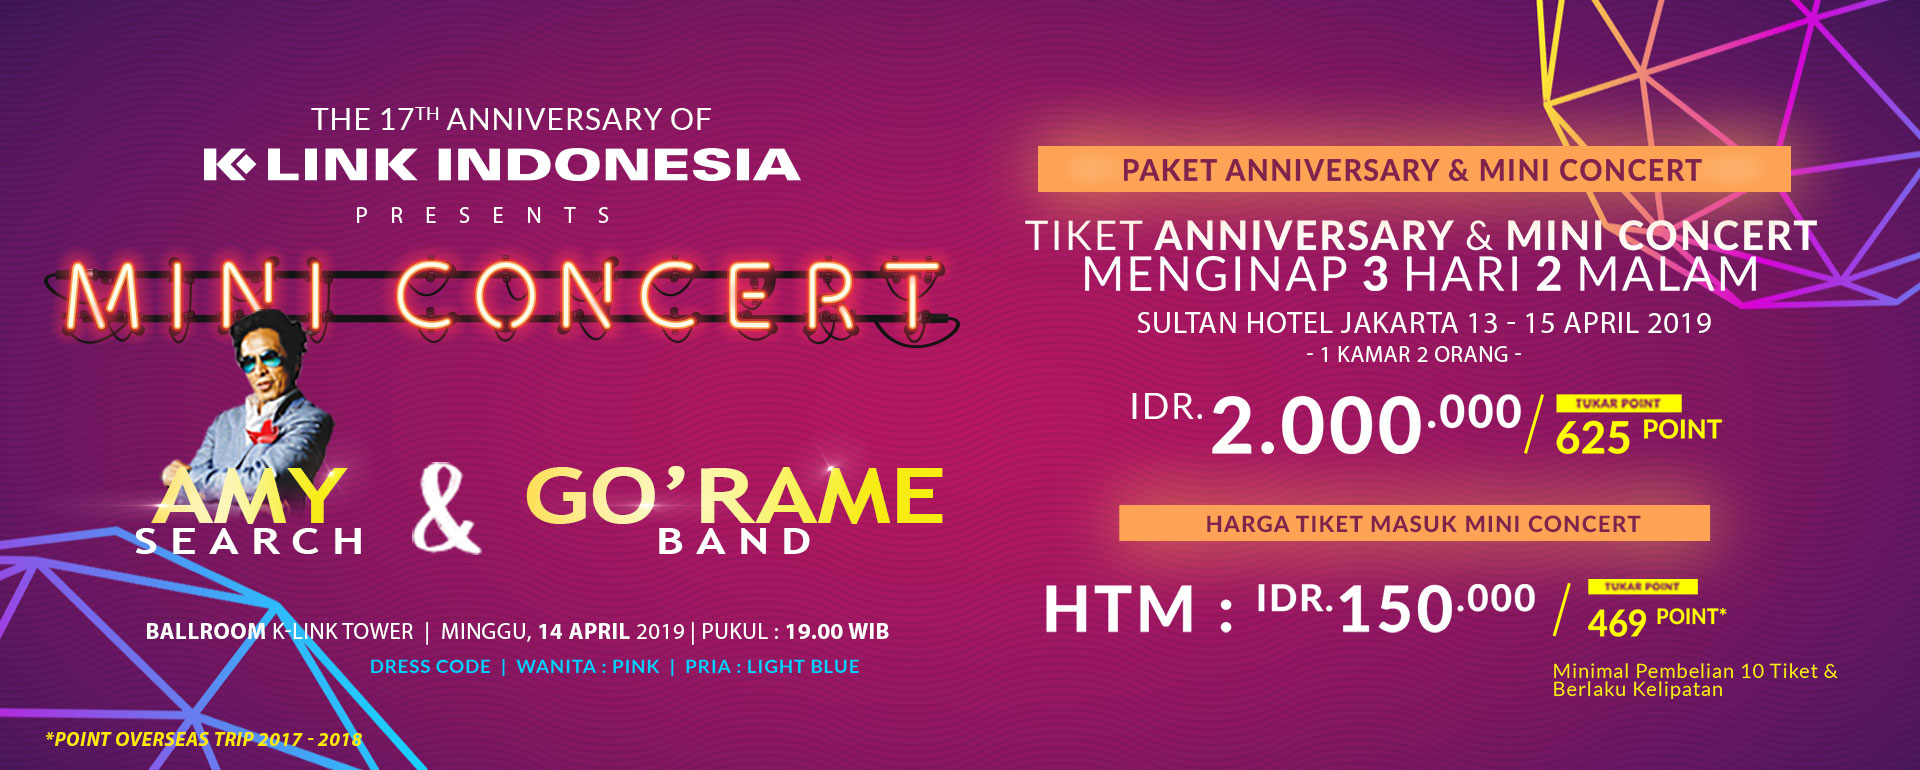 THE 17TH ANNIVERSARY OF K-LINK INDONESIA PRESENTS